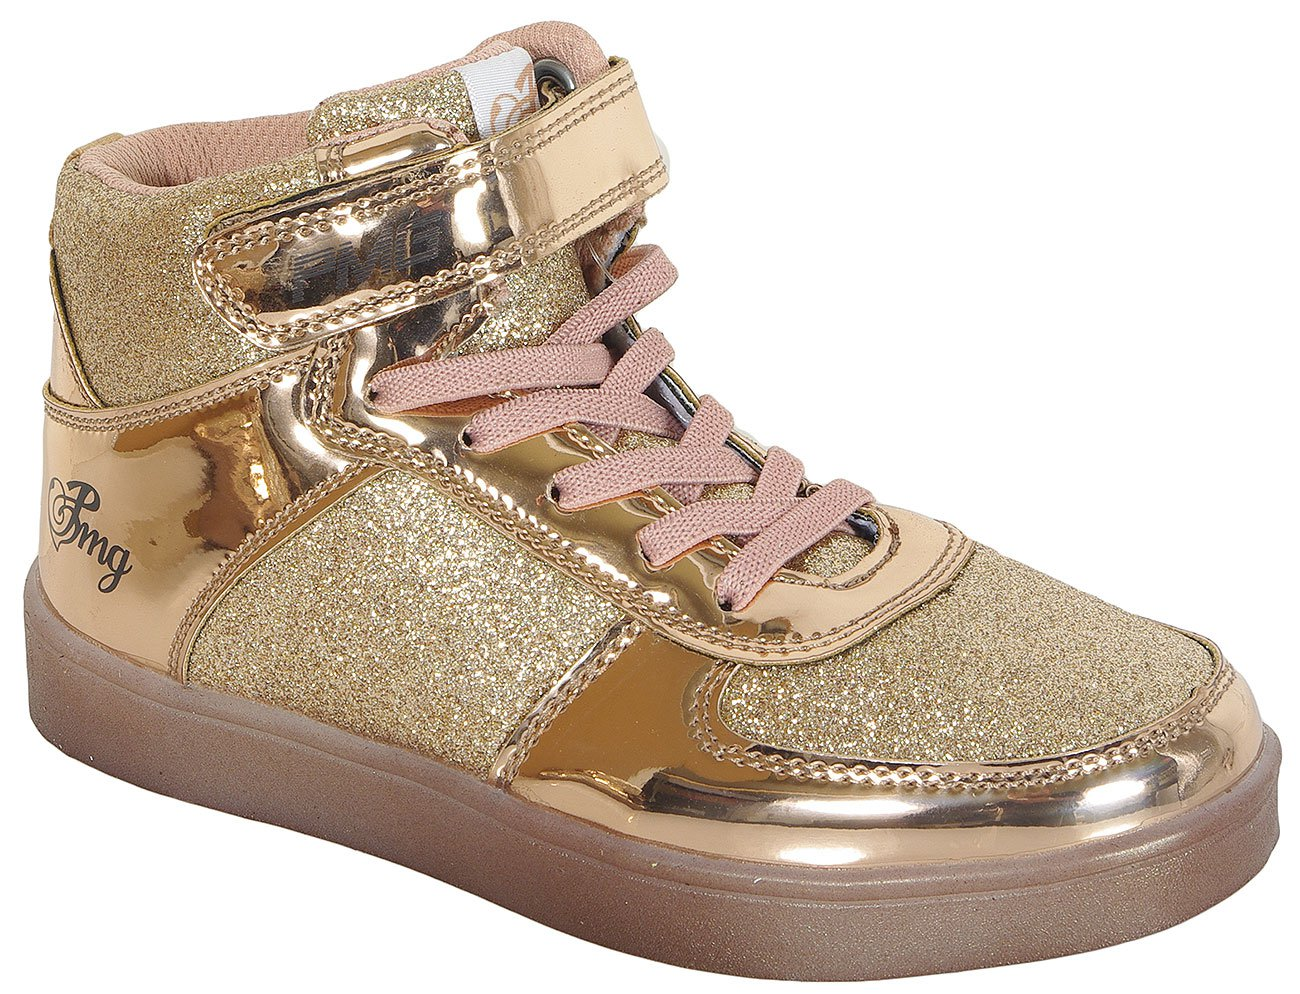 Primigi B&G Total Light Specchio/Glitt Cipri sneakers